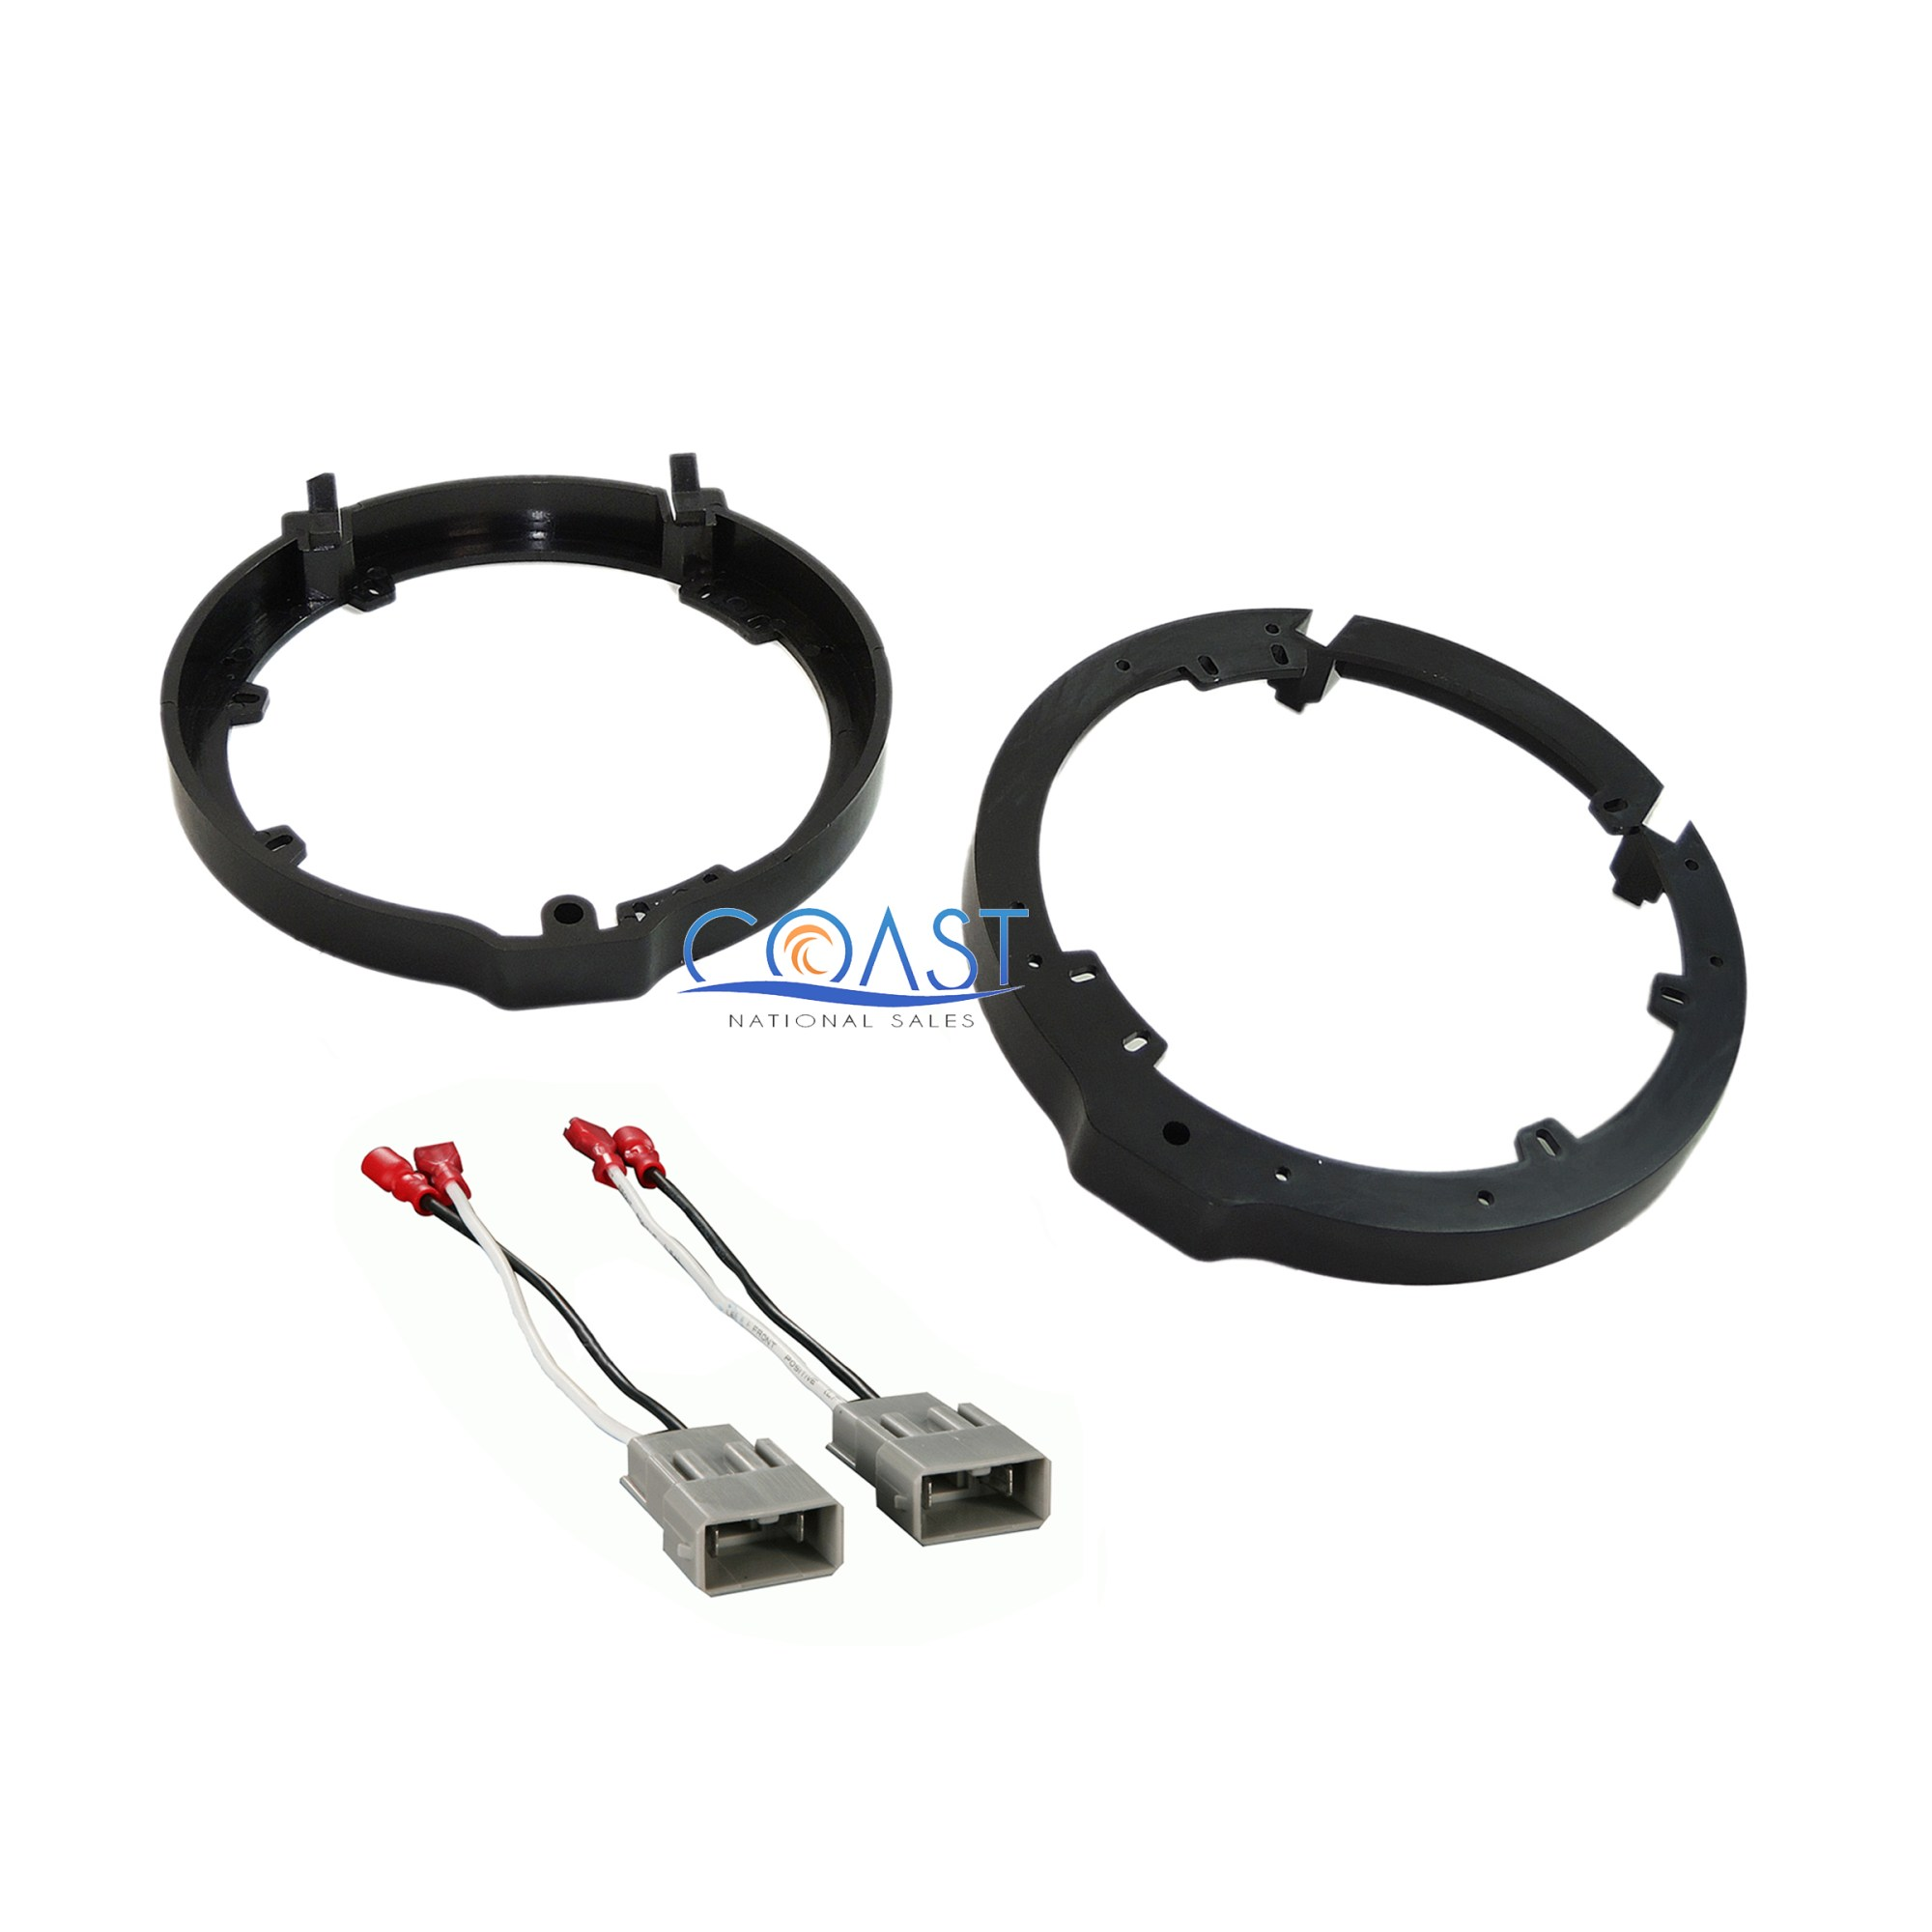 hight resolution of details about front or rear car door speaker wire harness adapter brackets for honda acura